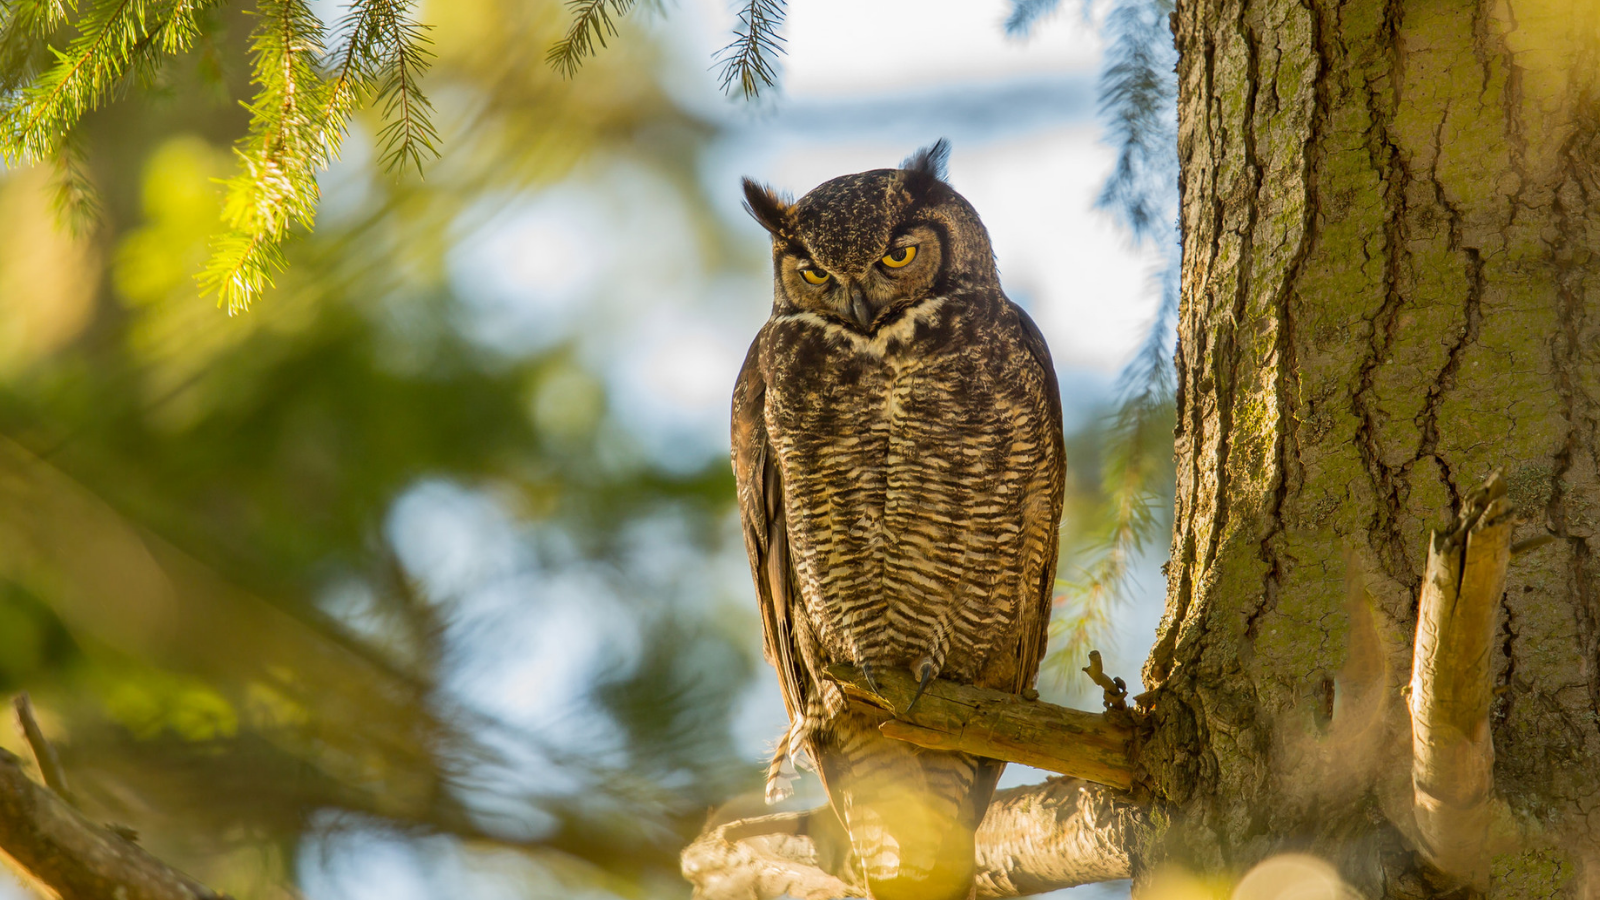 Great Horned Owl by Mick Thompson